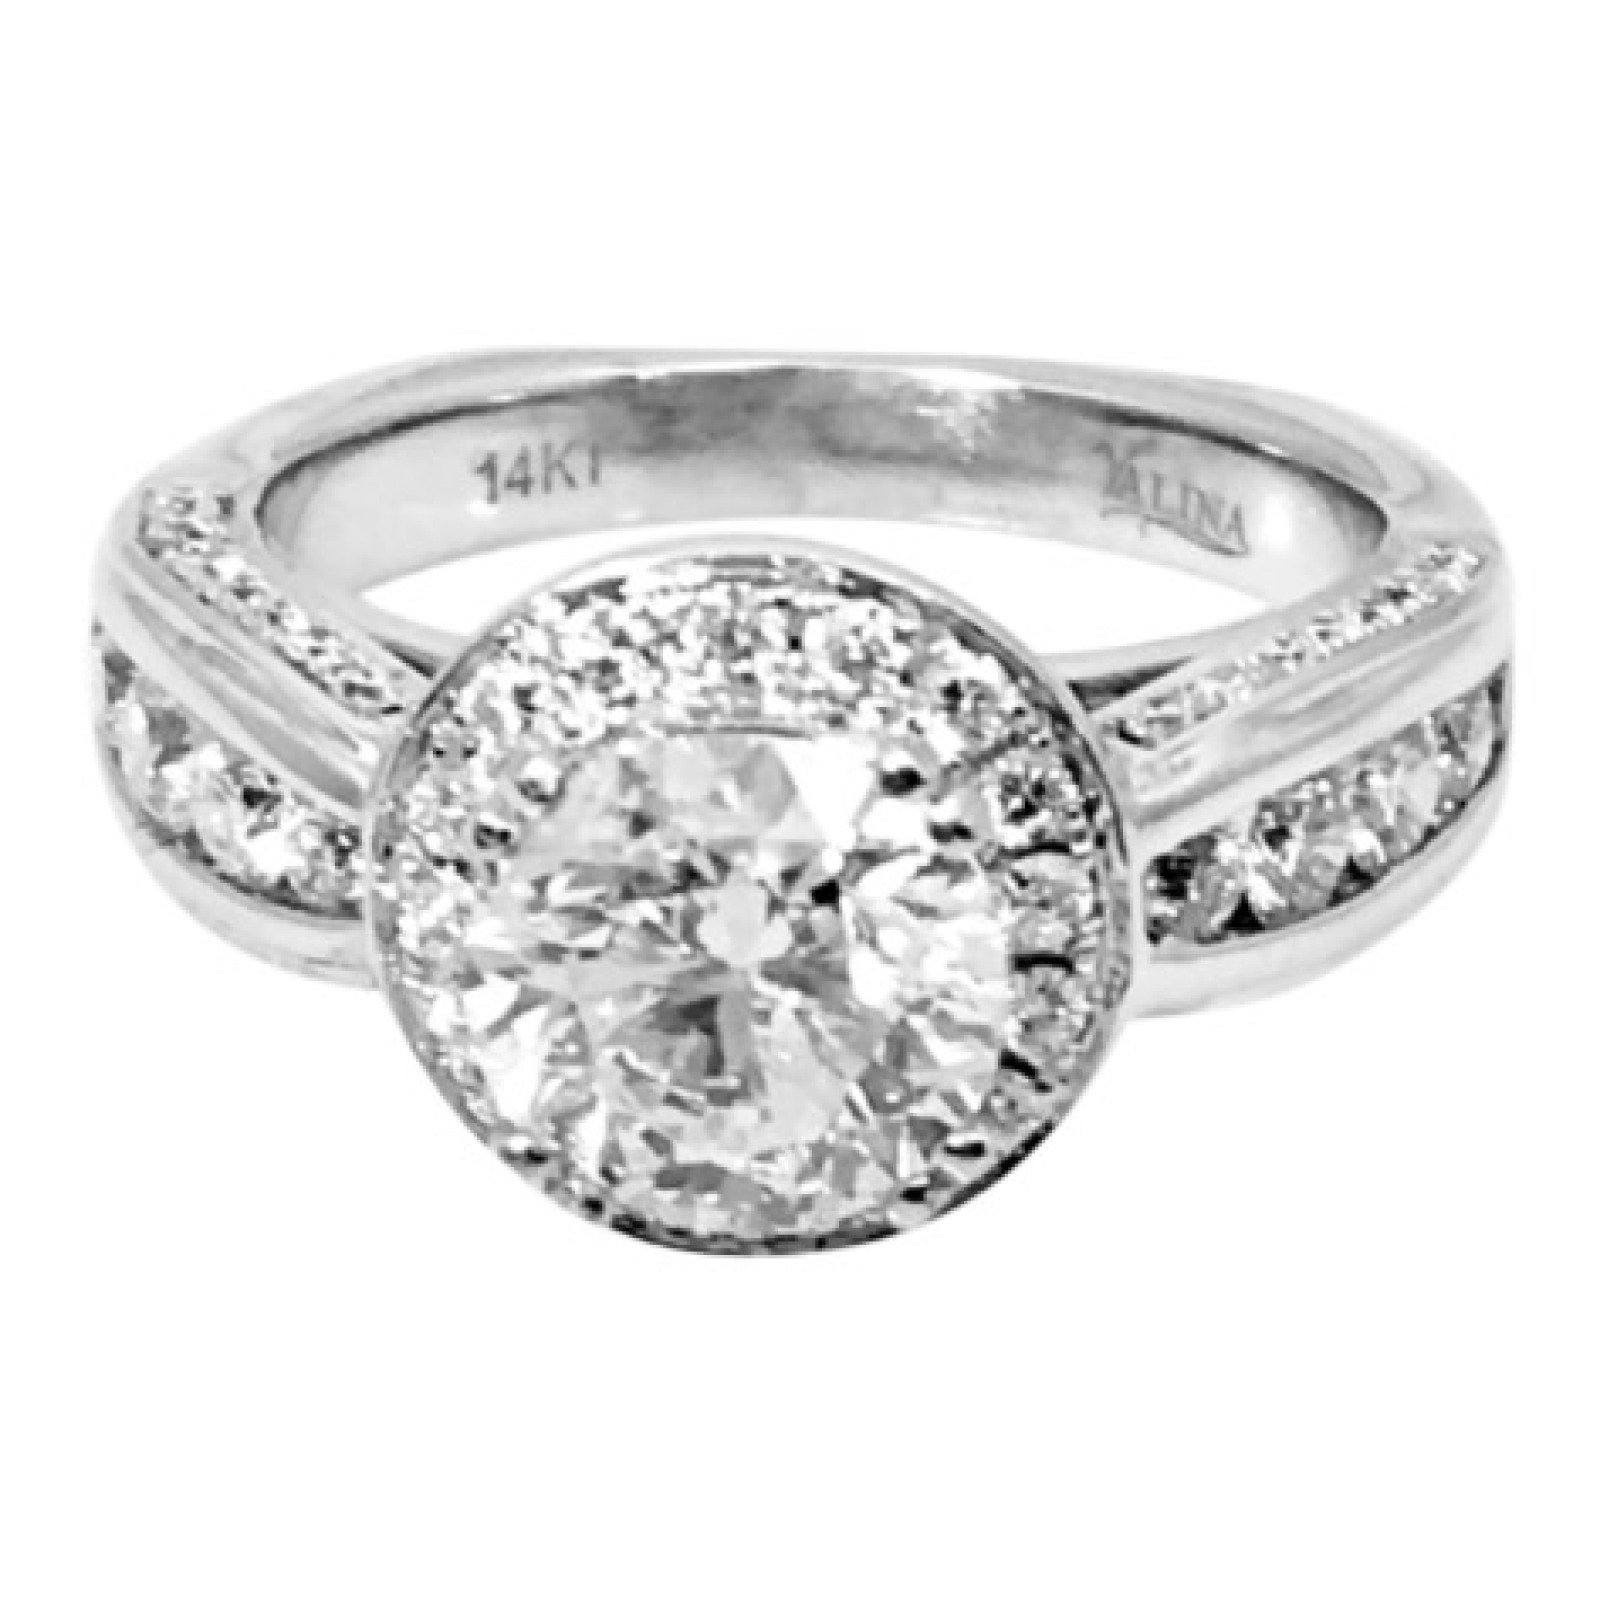 diamond jewellery oliver products tiffany cut cf rings solitaire engagement co type princess ring vendor diamonds